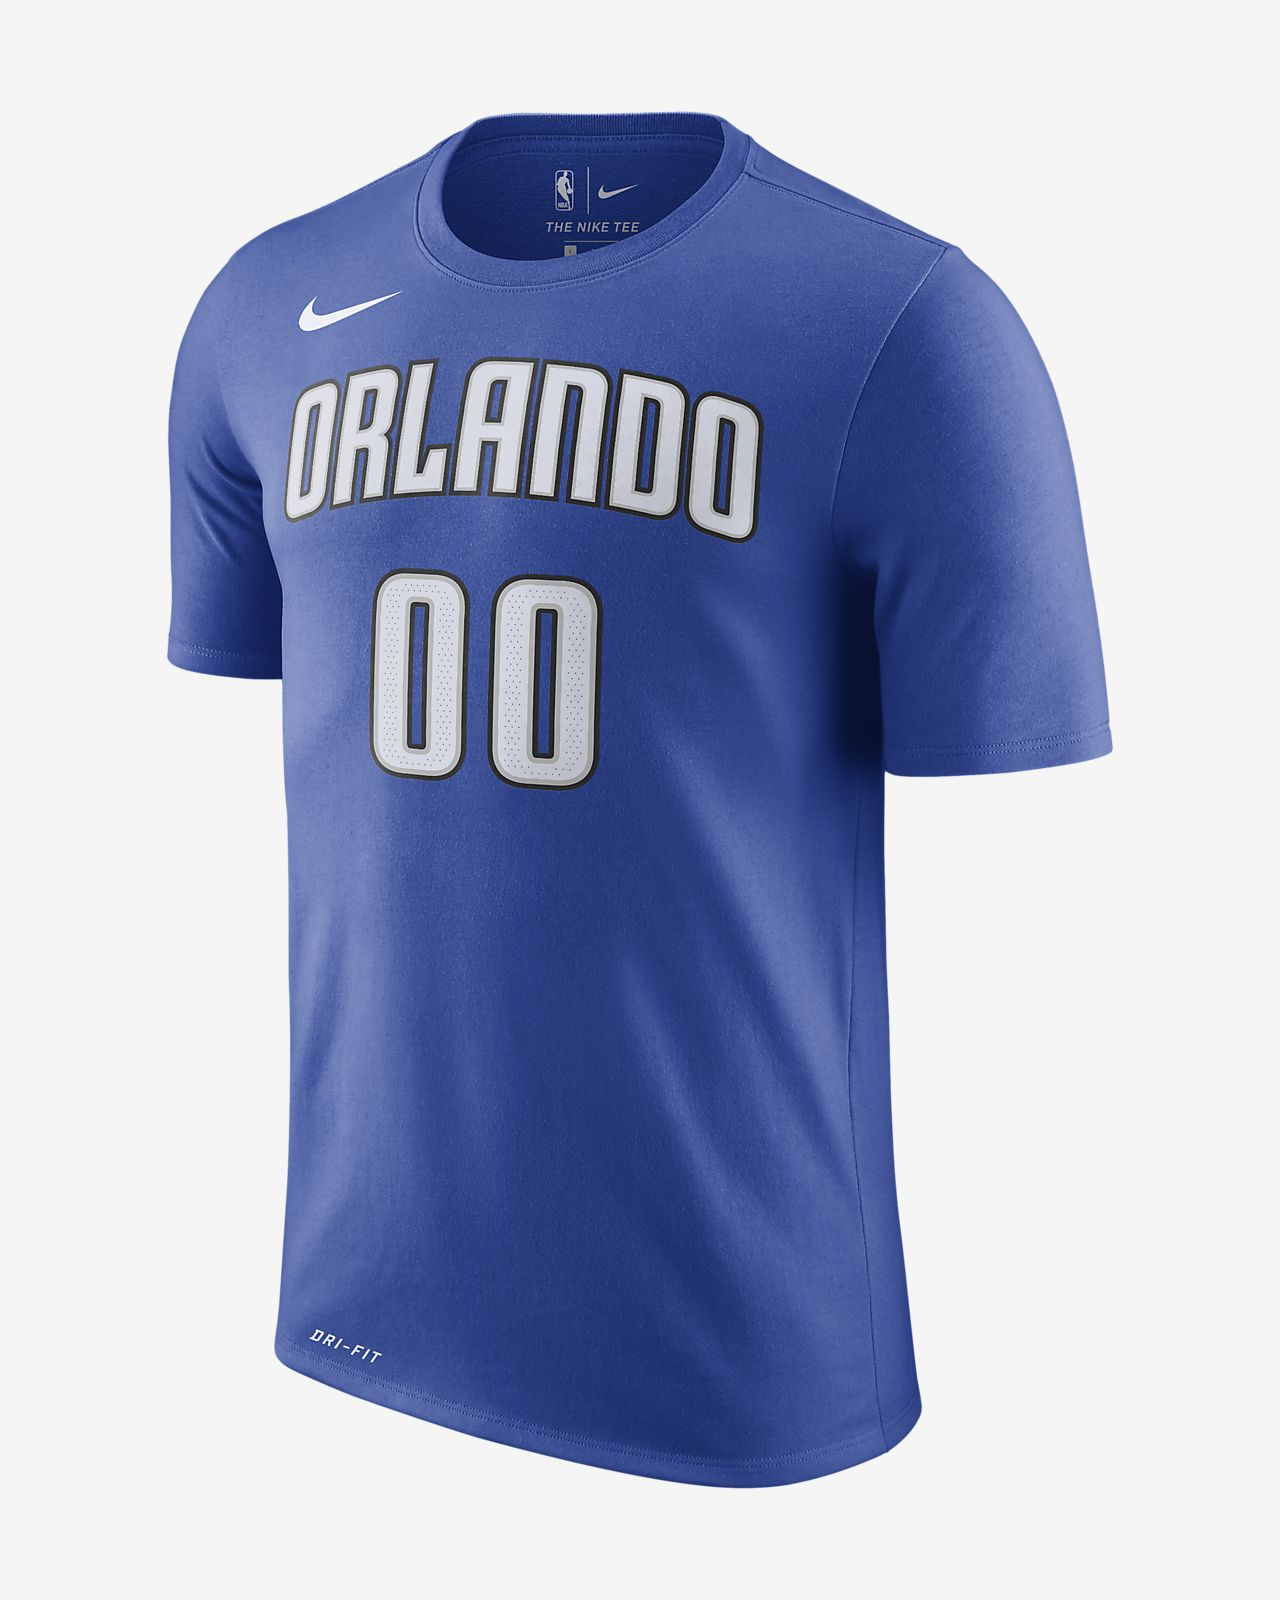 Aaron Gordon Orlando Magic Nike Dri-FIT Men's NBA T-Shirt